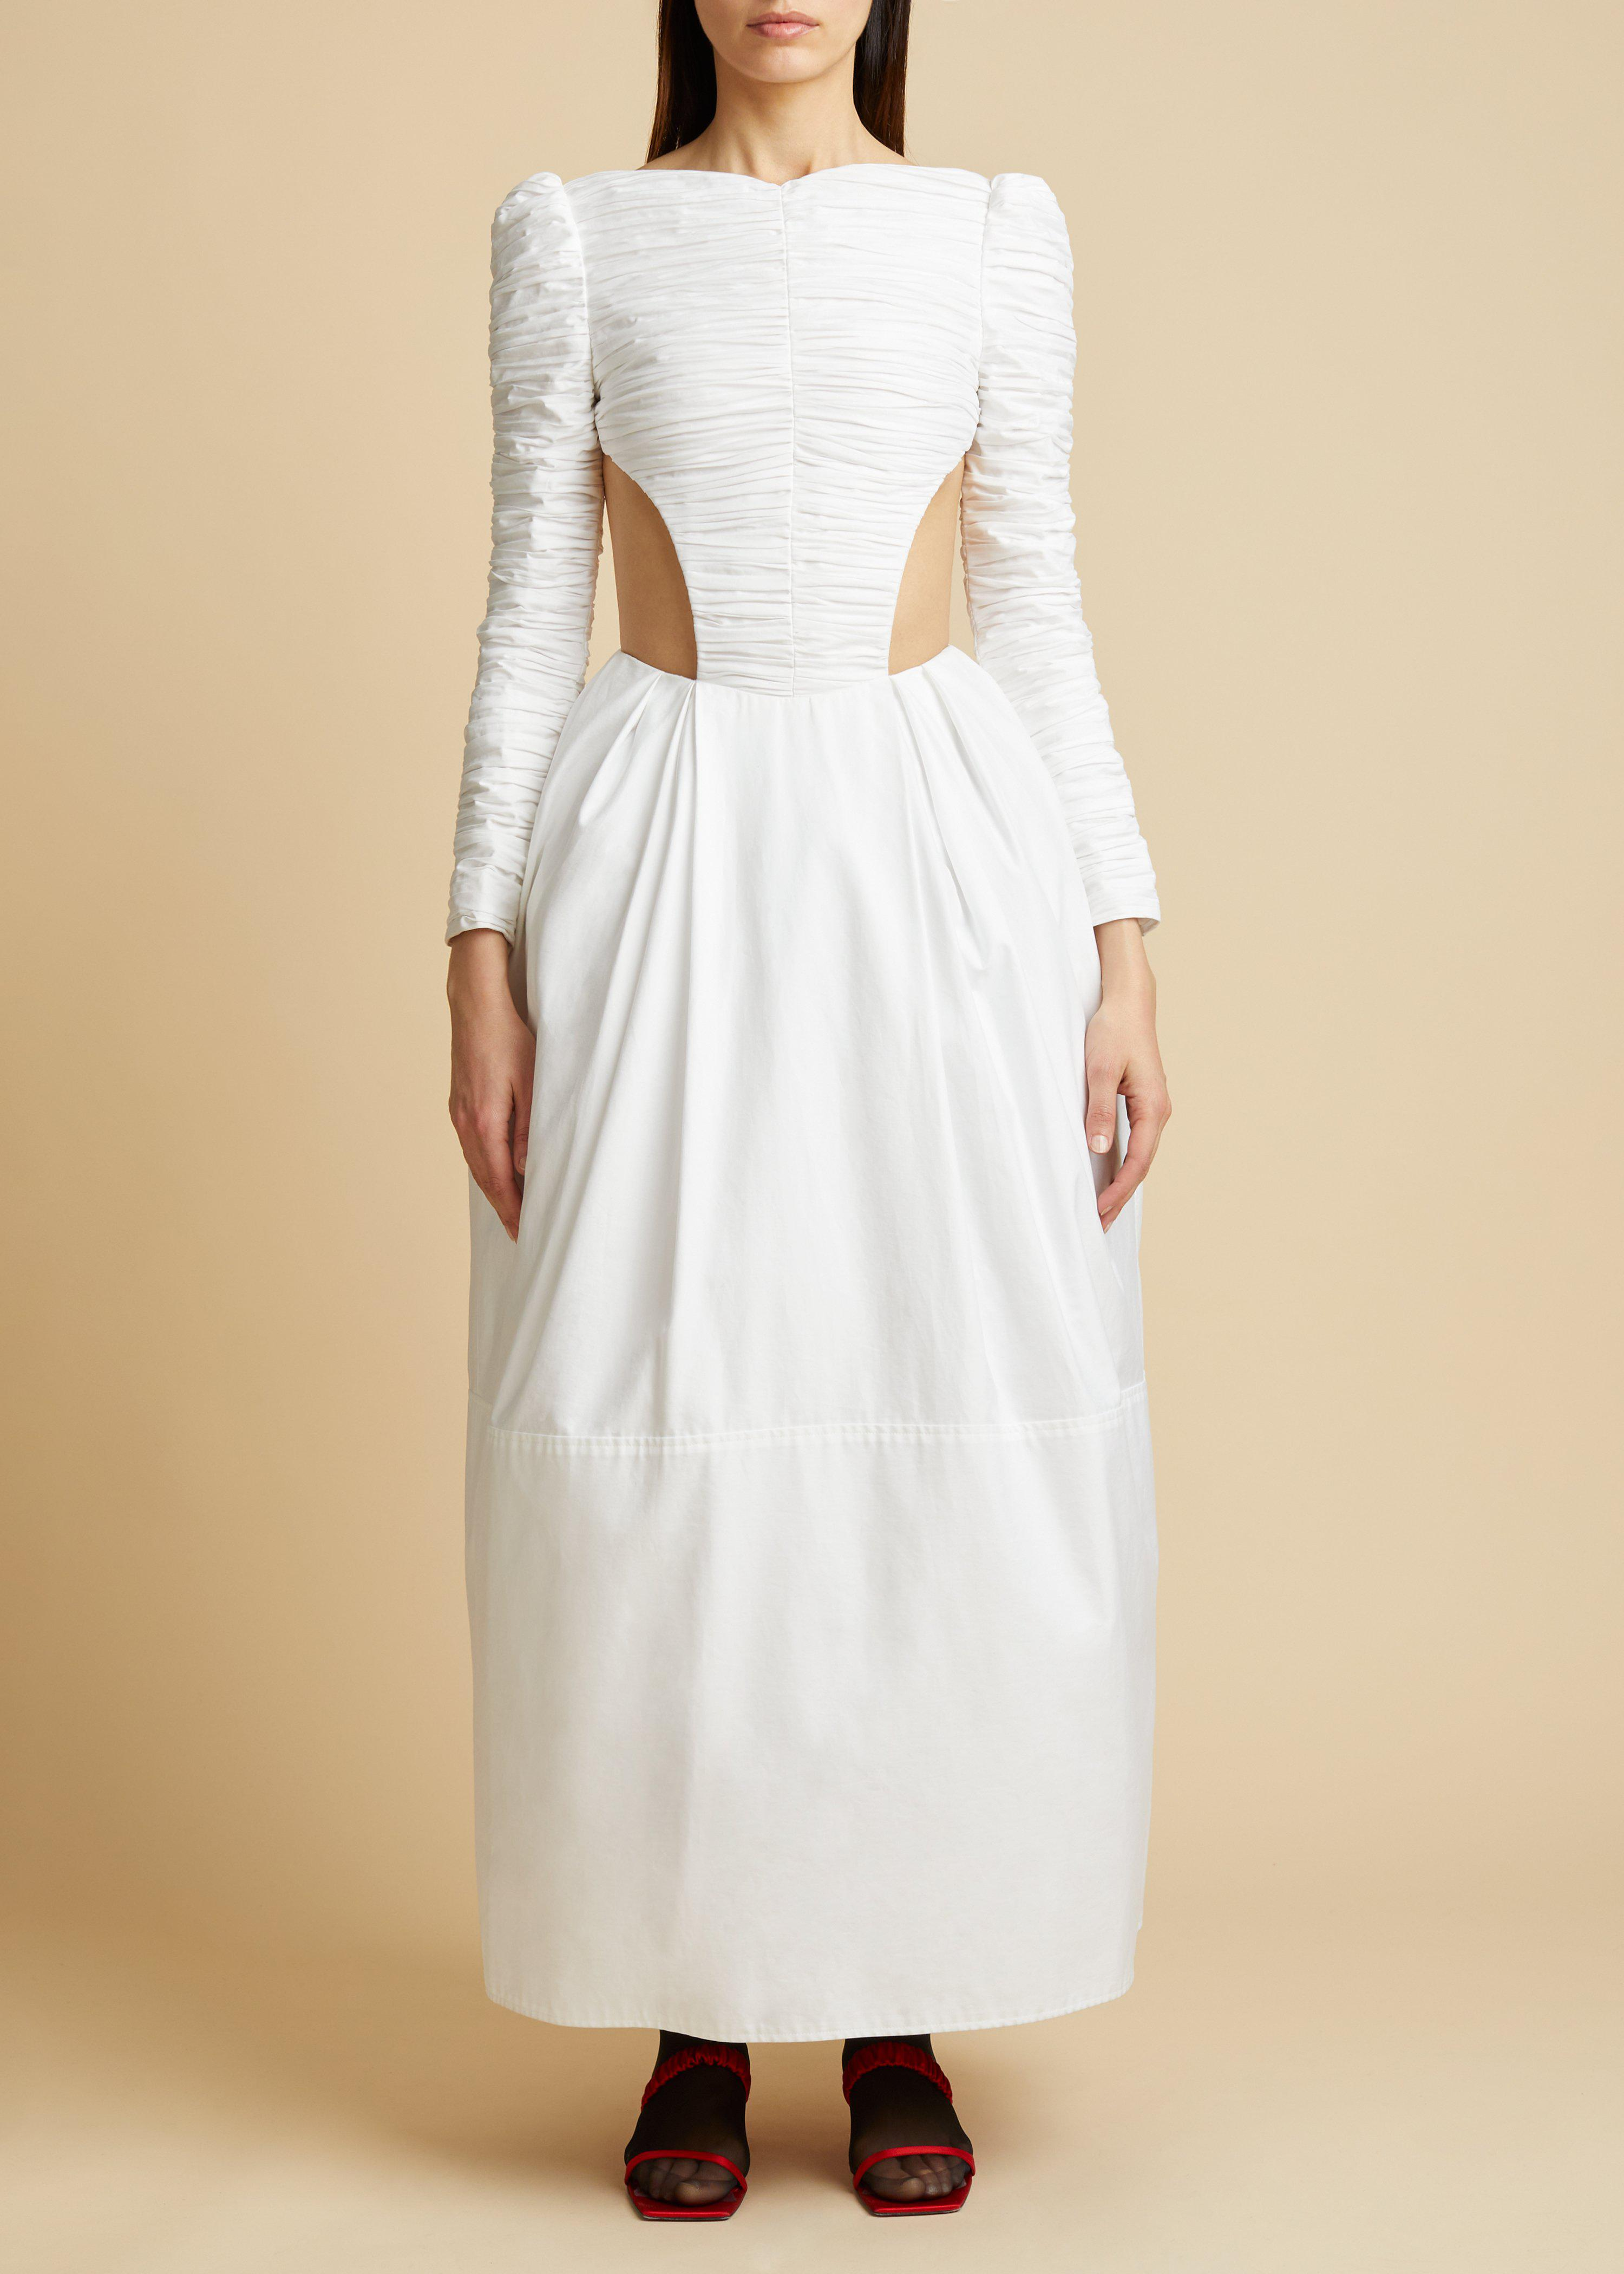 The Rosaline Dress with Petticoat in White 1